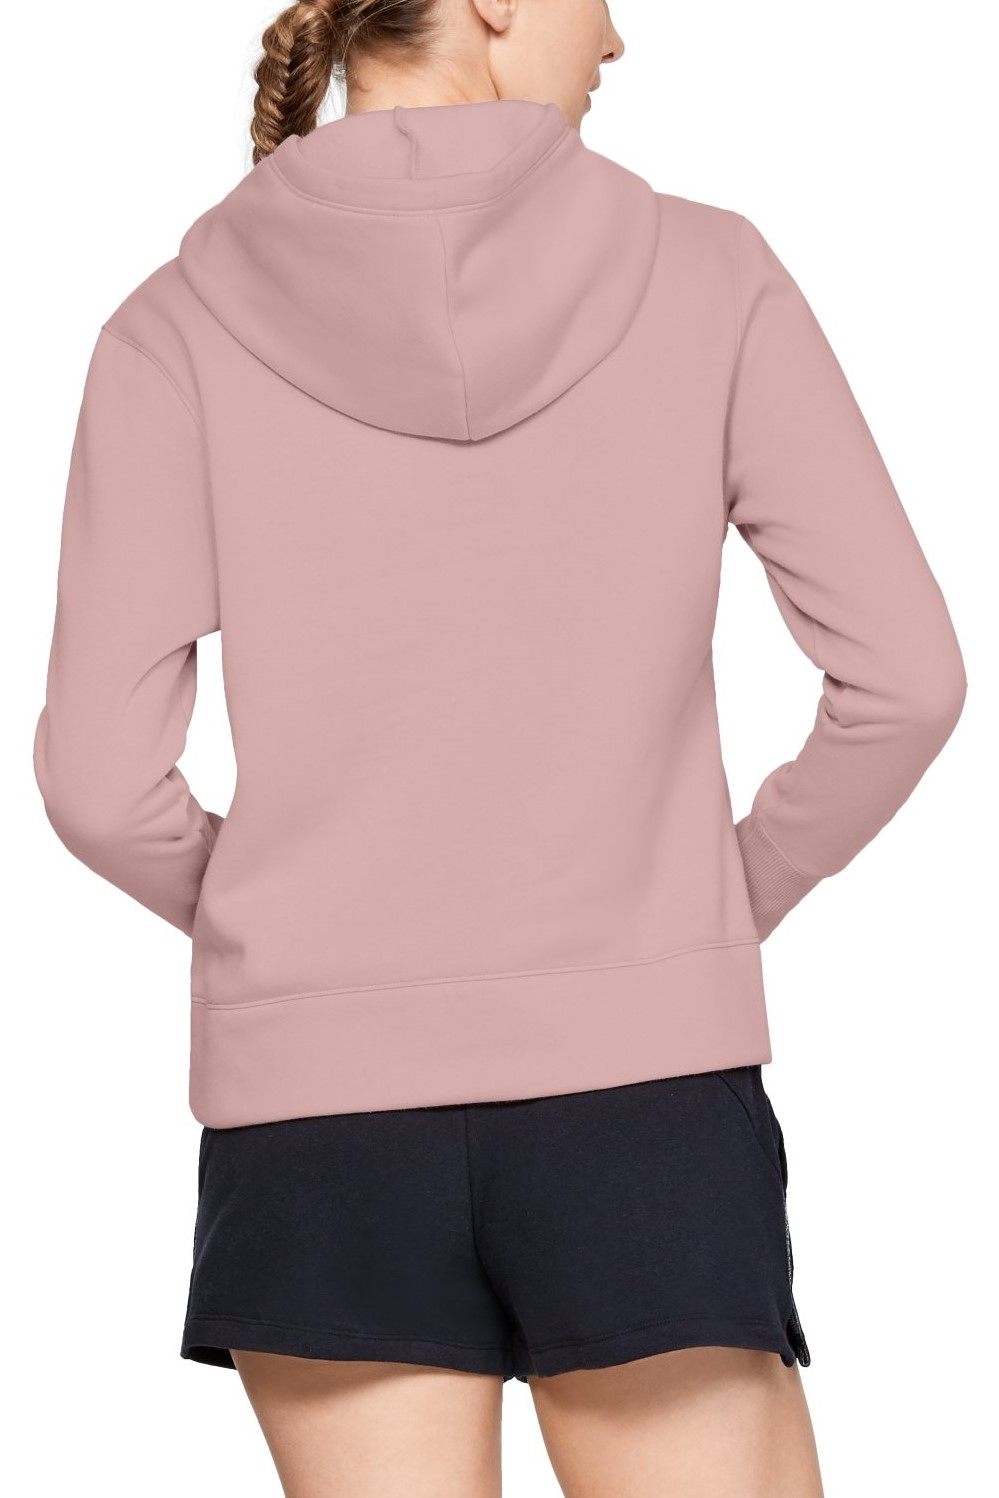 Under Armour pudrová mikina Sportstyle Logo Hoodie